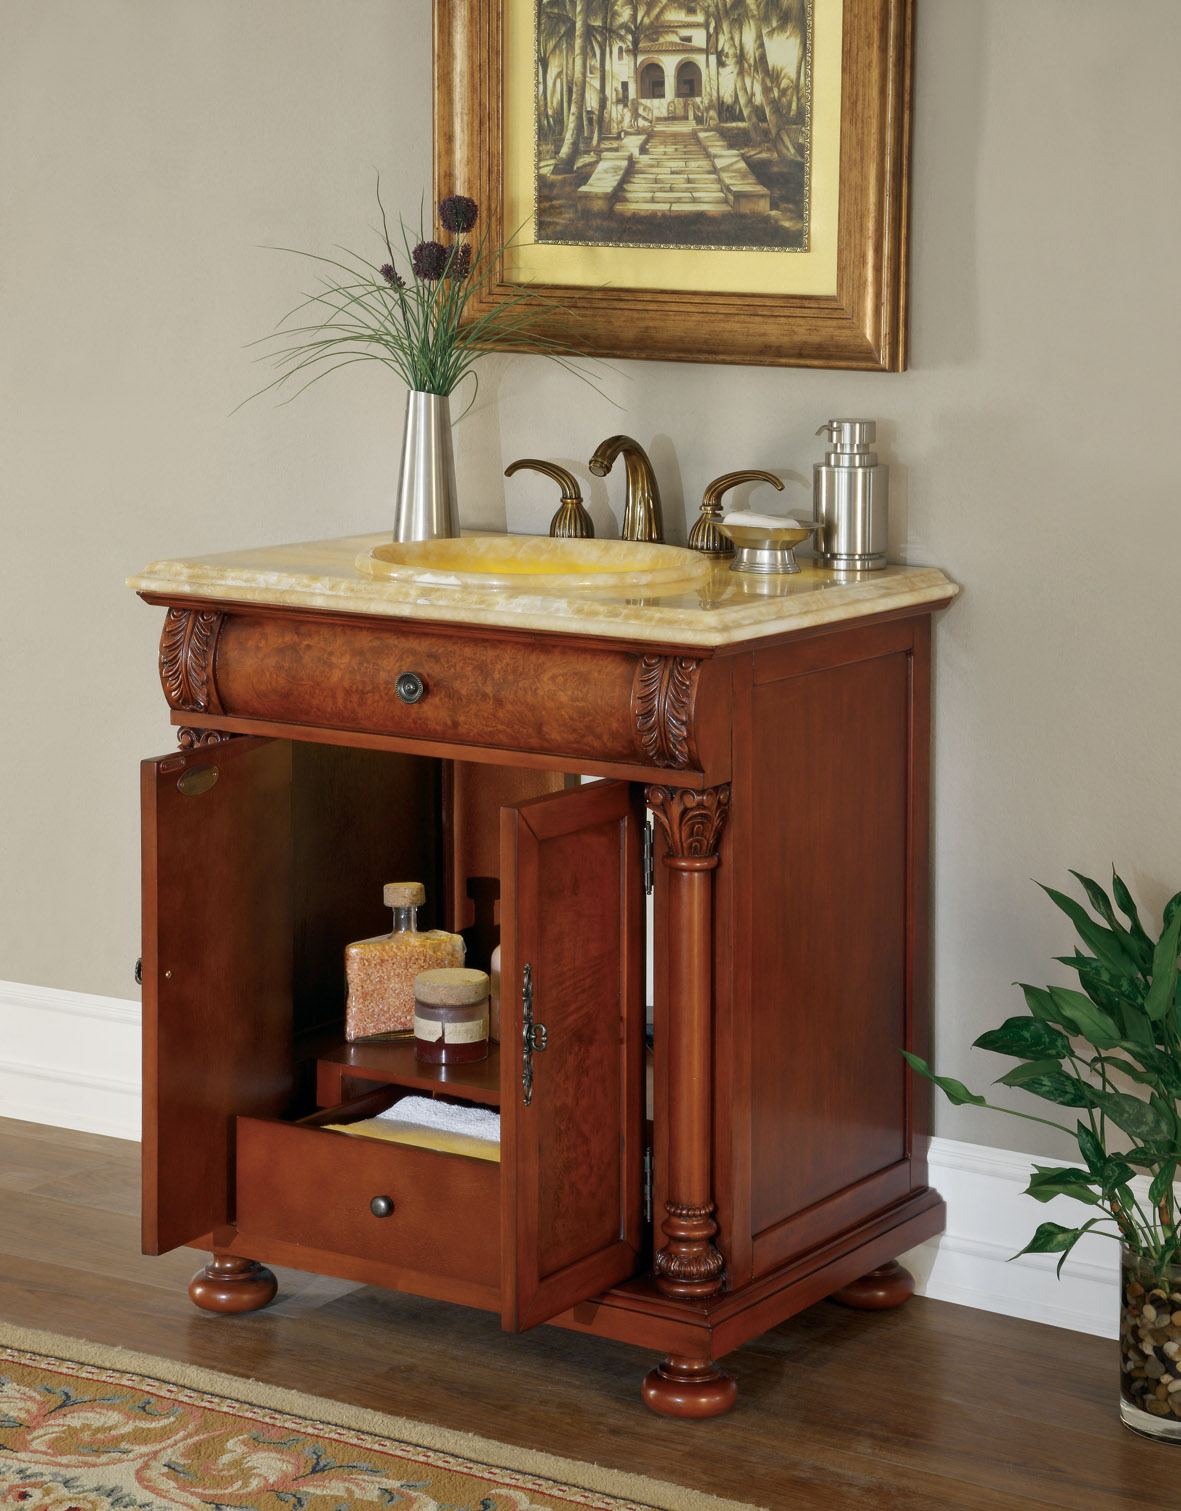 Onyx Vanity Sinks Onyx Bathroom Sinks Yellow Honey Onyx